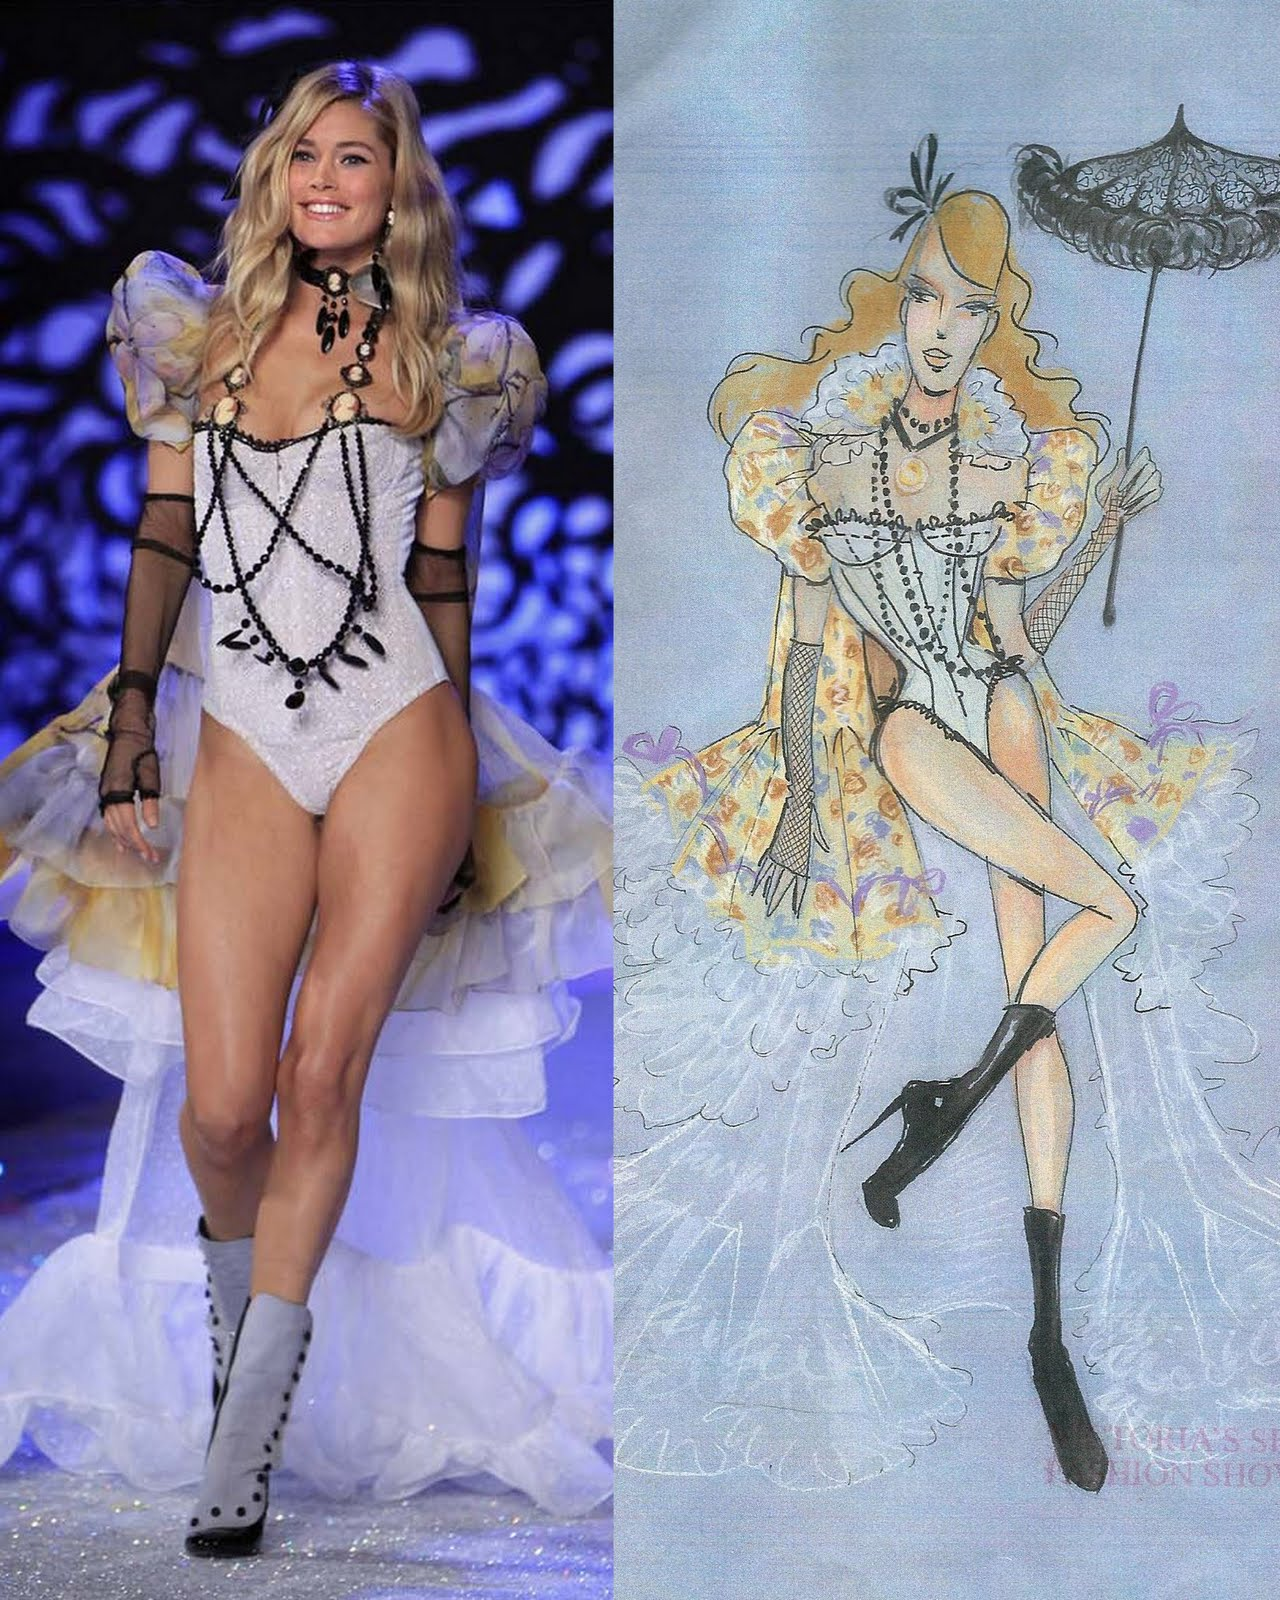 Victorias secret fashion show 2016 wiki - Photo Courtesy Of Victoria S Secret Fashion Show 2011 Lukas Jackson Reuters Sketch By Todd Thomas